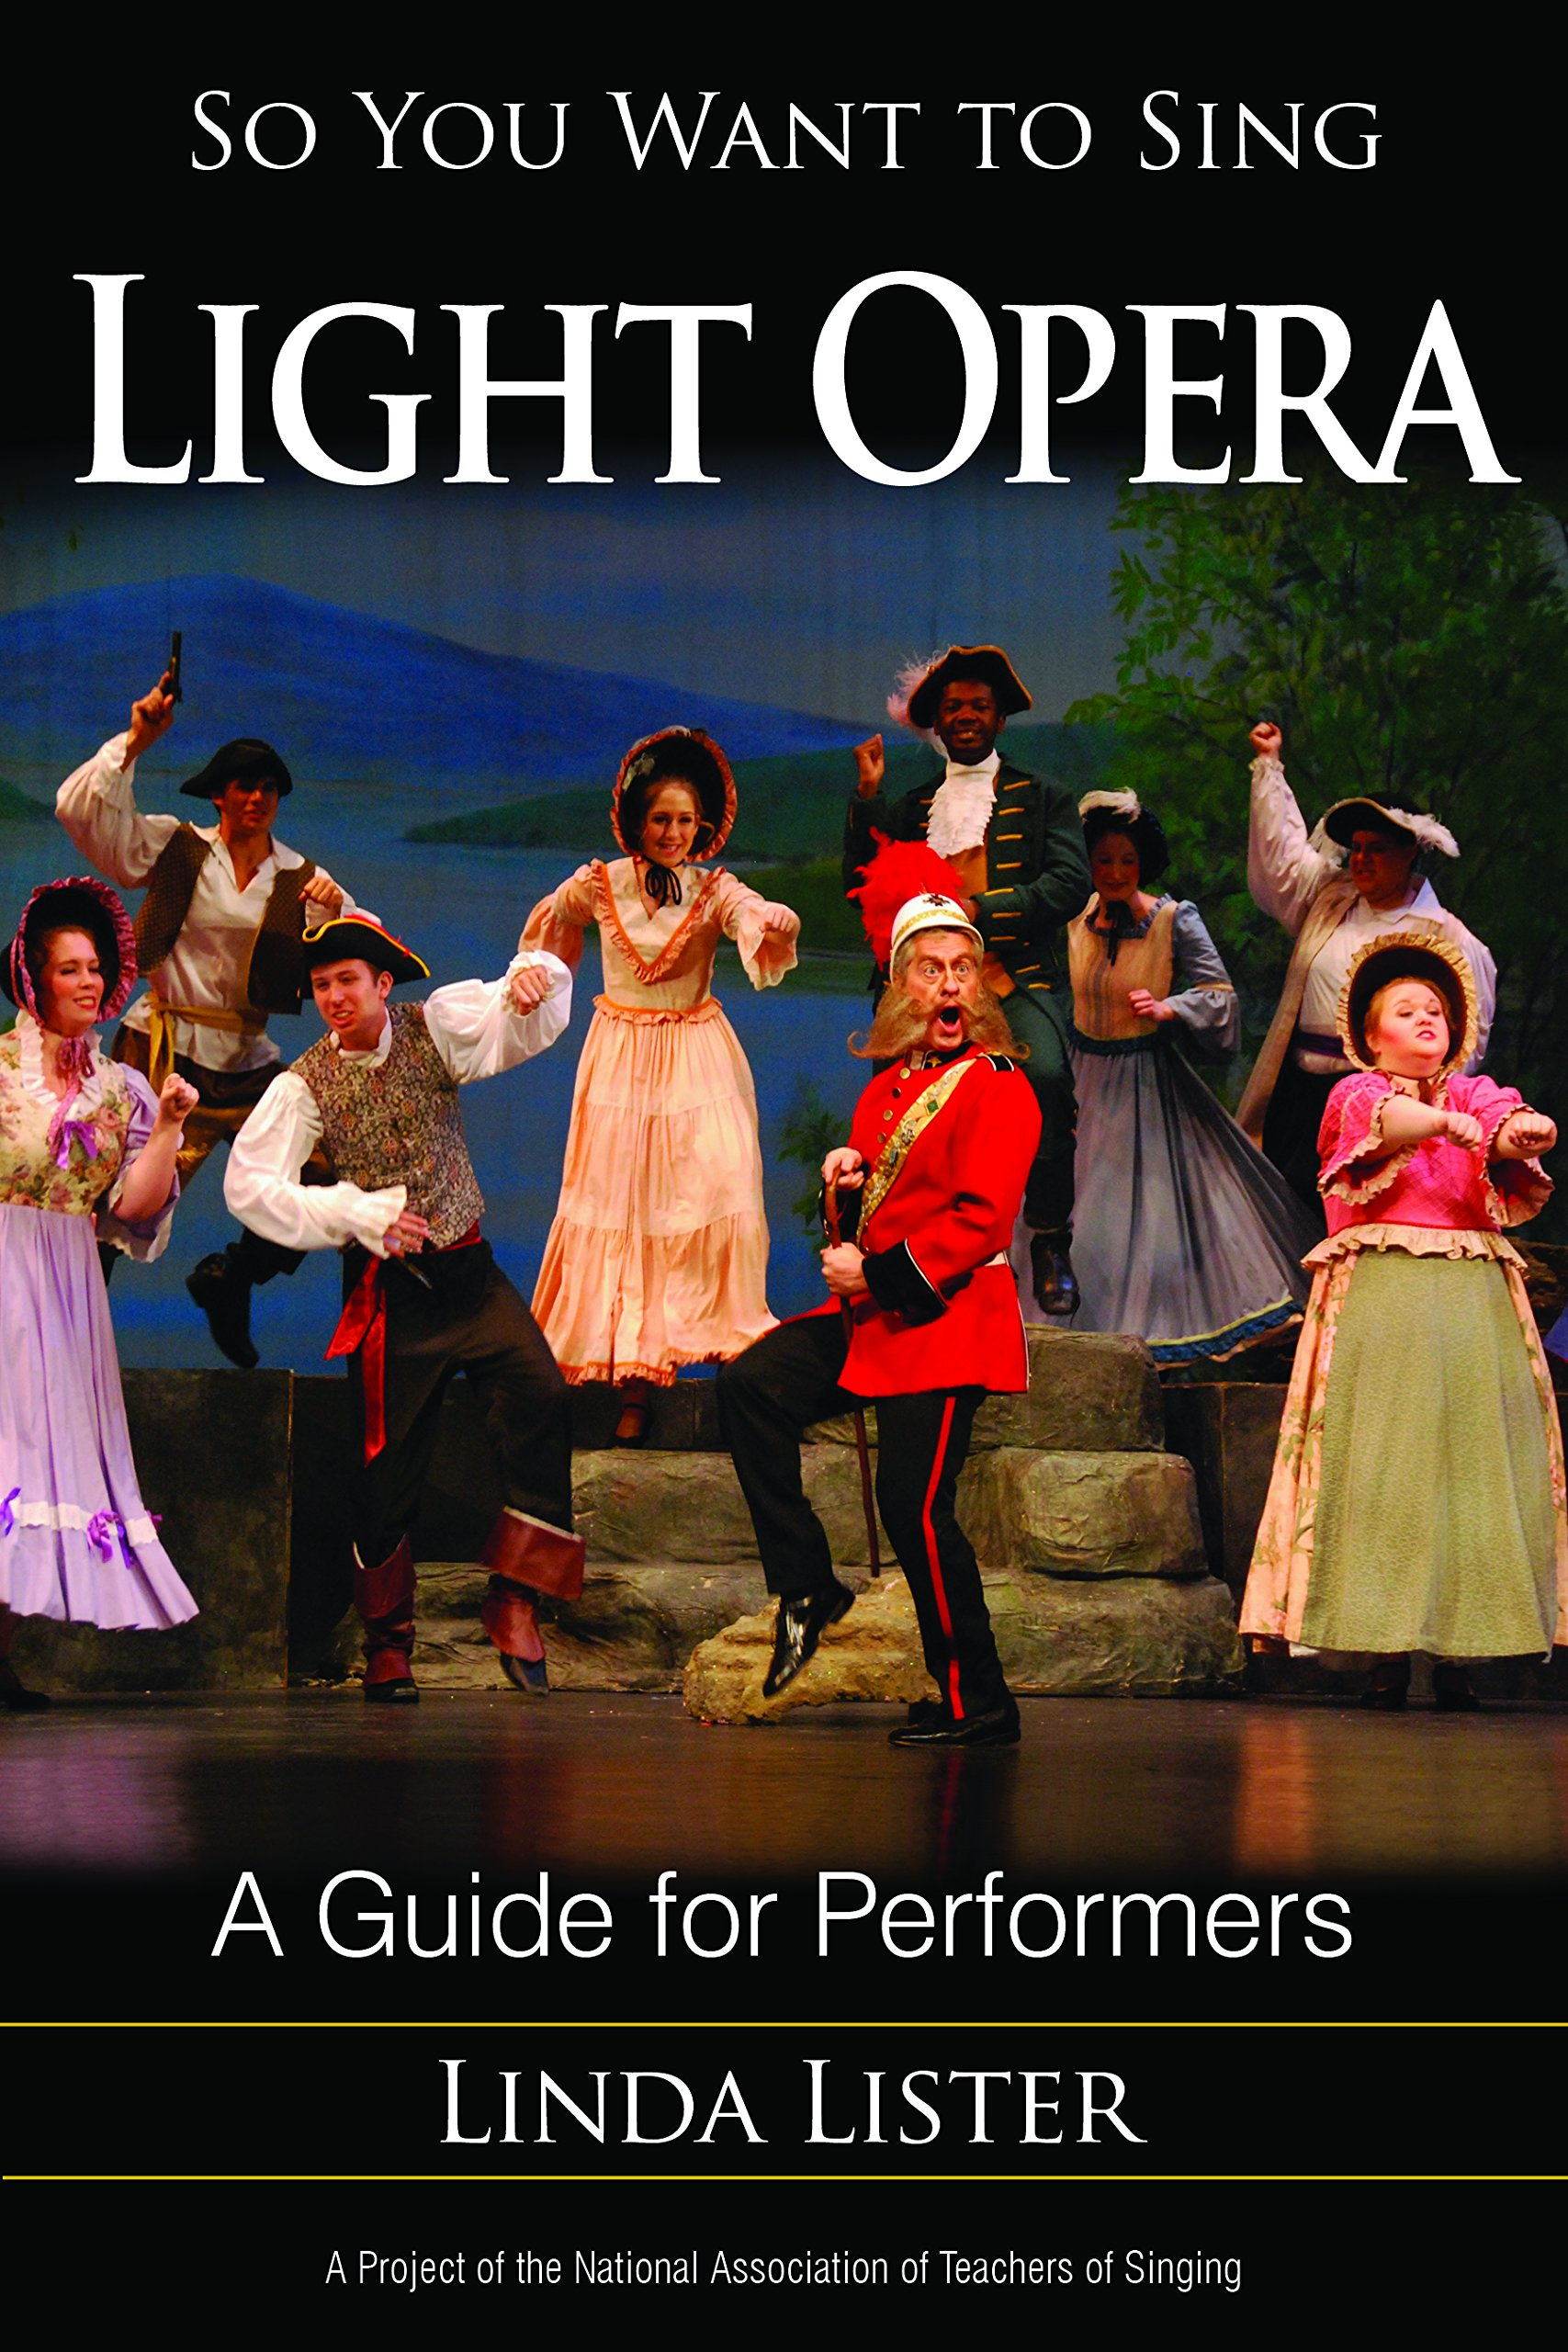 So You Want to Sing Light Opera: A Guide for Performers ebook